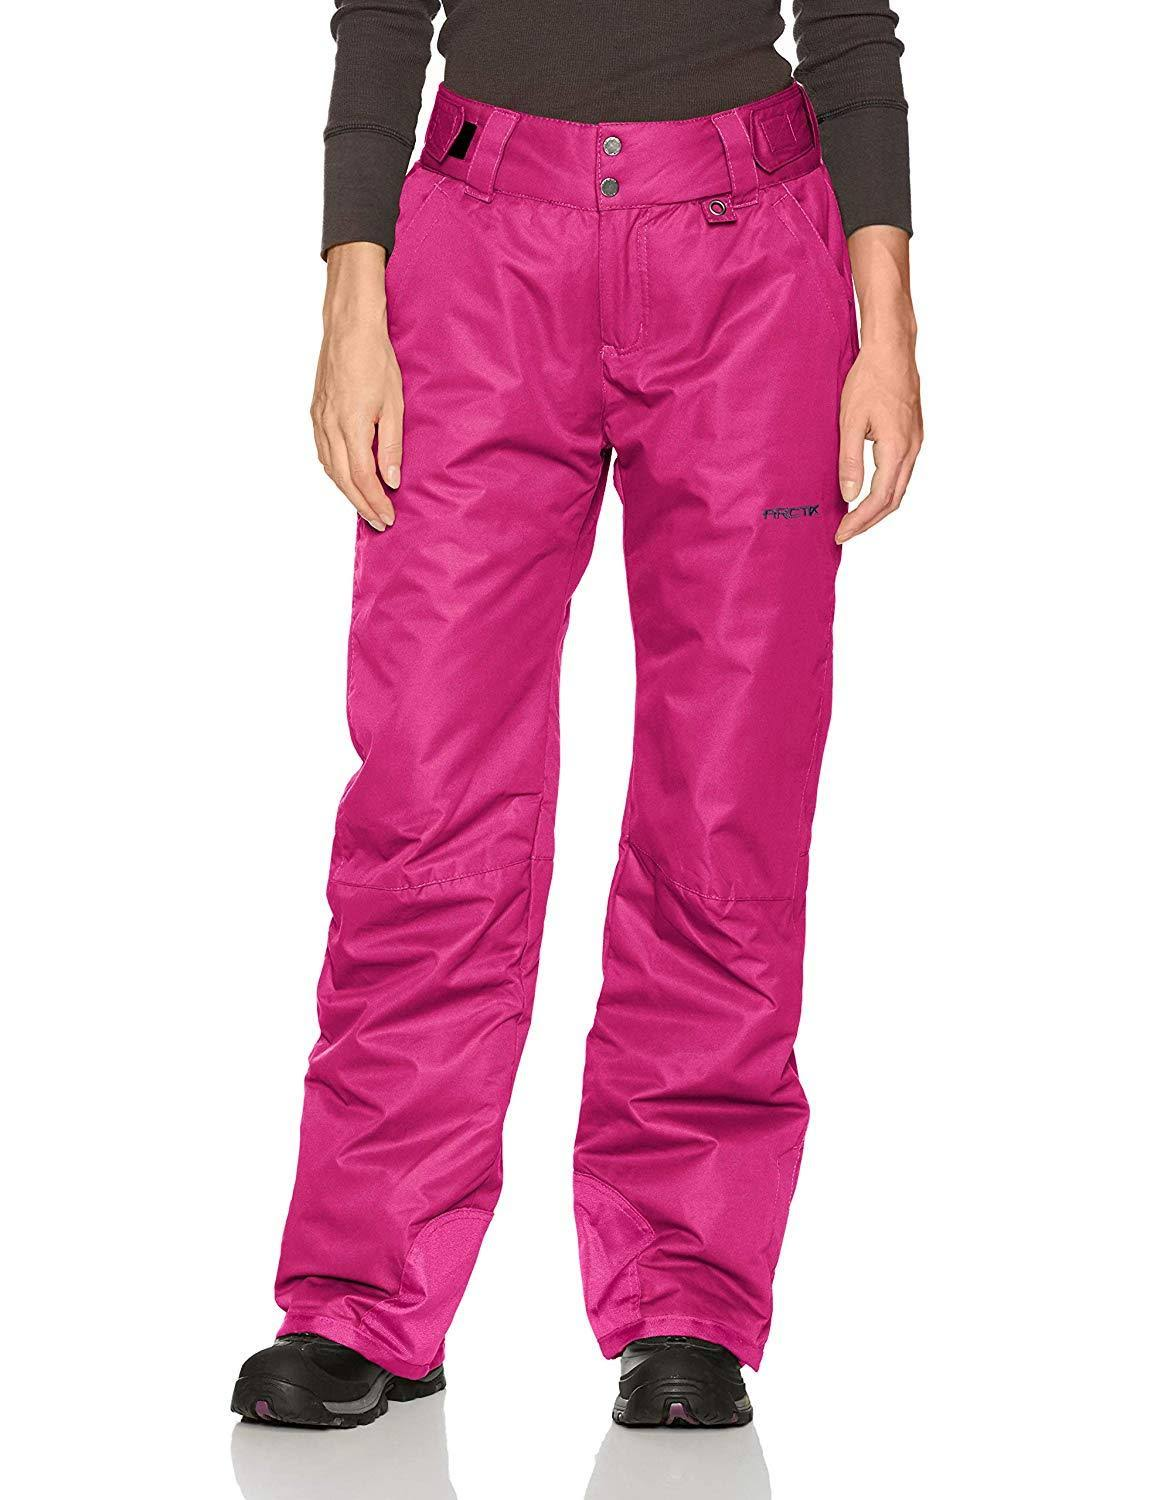 Arctix Women's Insulated Snow Pant Orchid Fuchsia / Small Regular